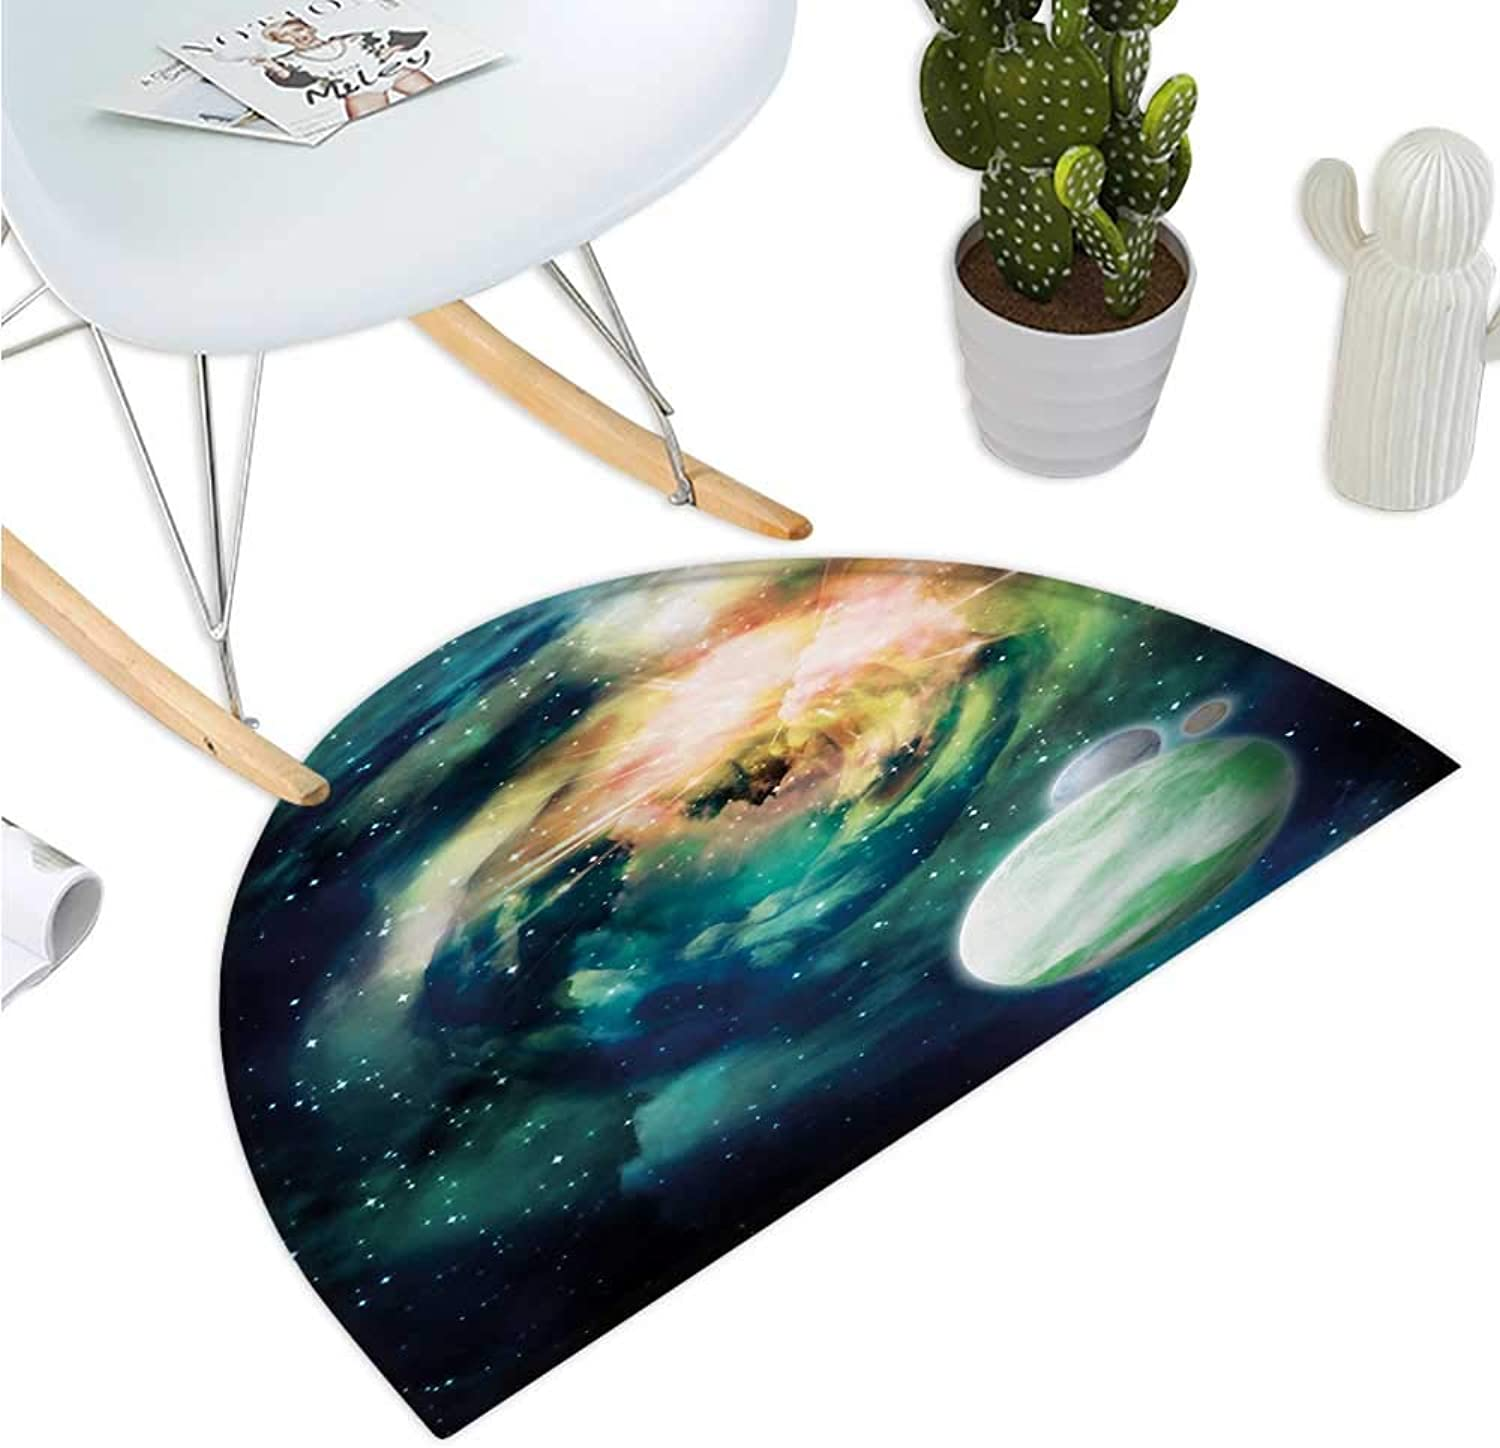 Space Half Round Door mats Spiral Anromeda Galaxy with Planets Mystical Cosmos Fantasy Background Image Entry Door Mat H 47.2  xD 70.8  Teal bluee Yellow